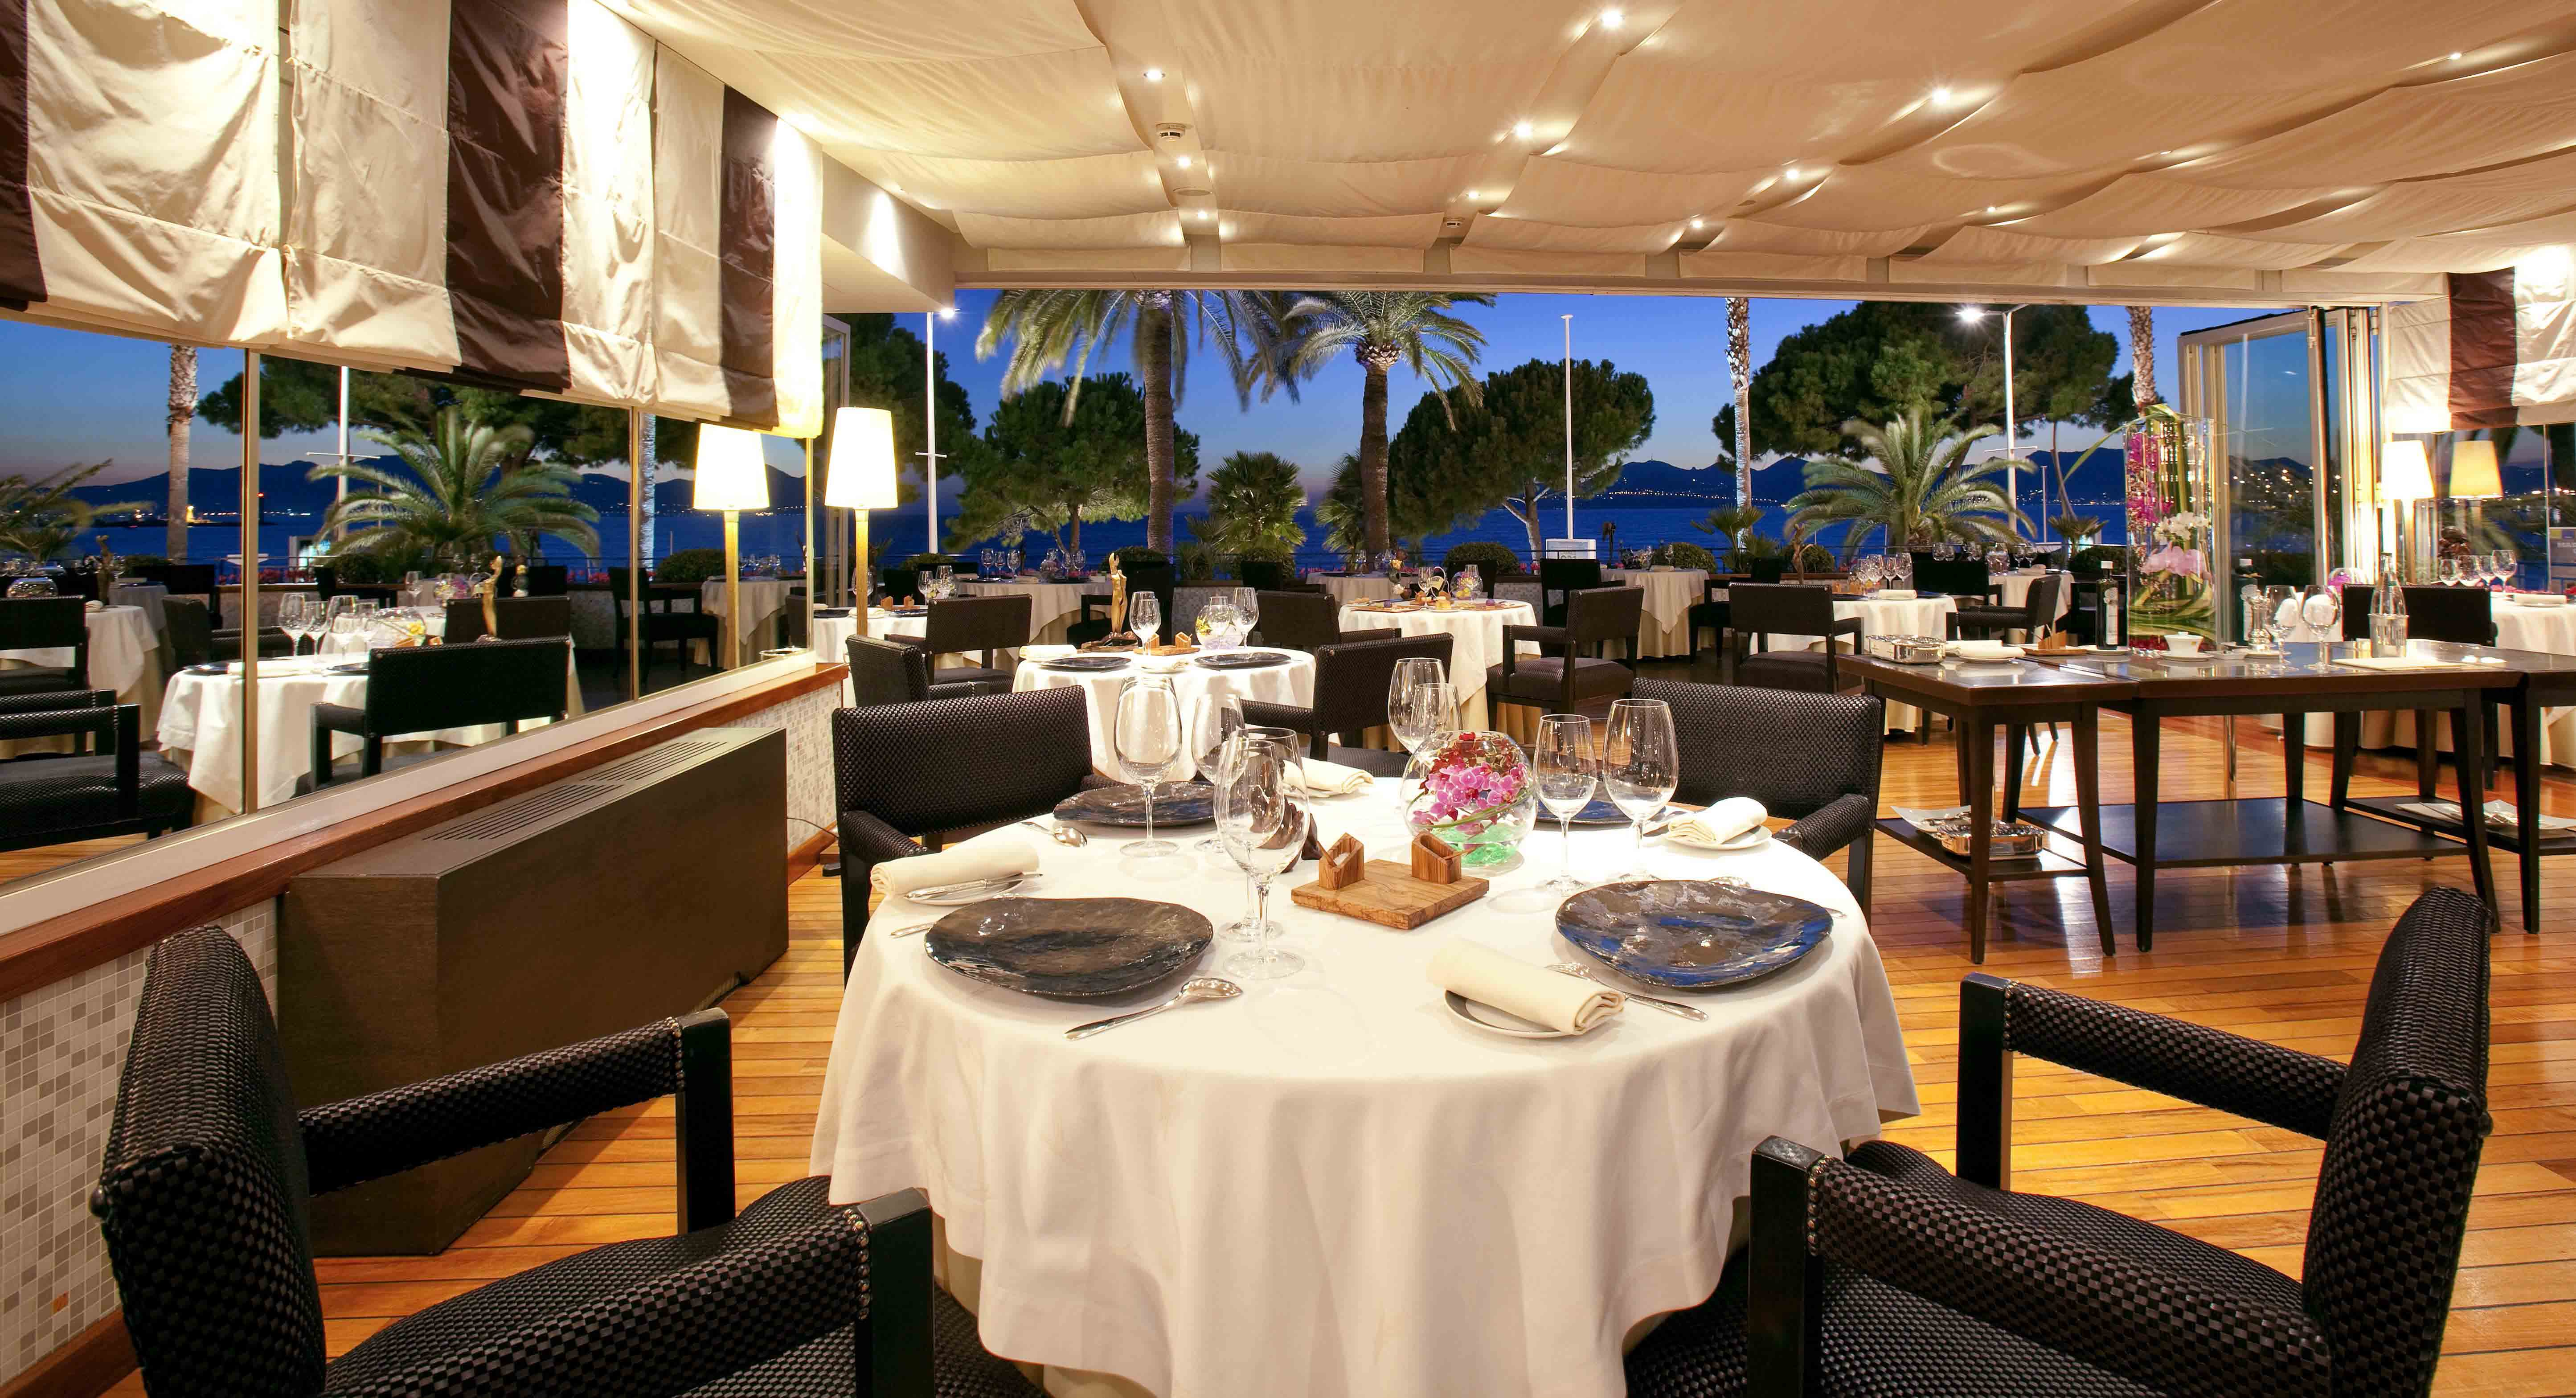 Grand hyatt cannes h tel martinez h tel cannes for Meilleur resto cannes